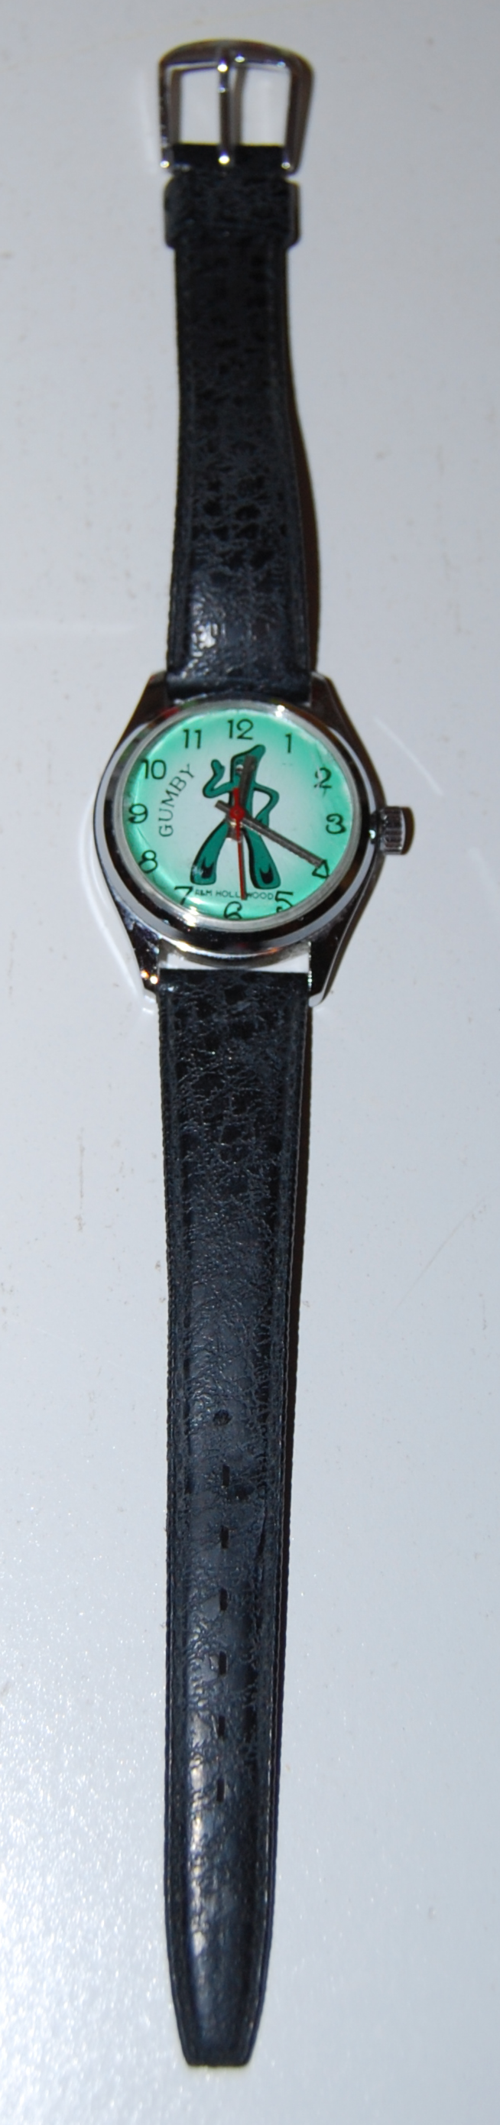 Vintage gumby watch